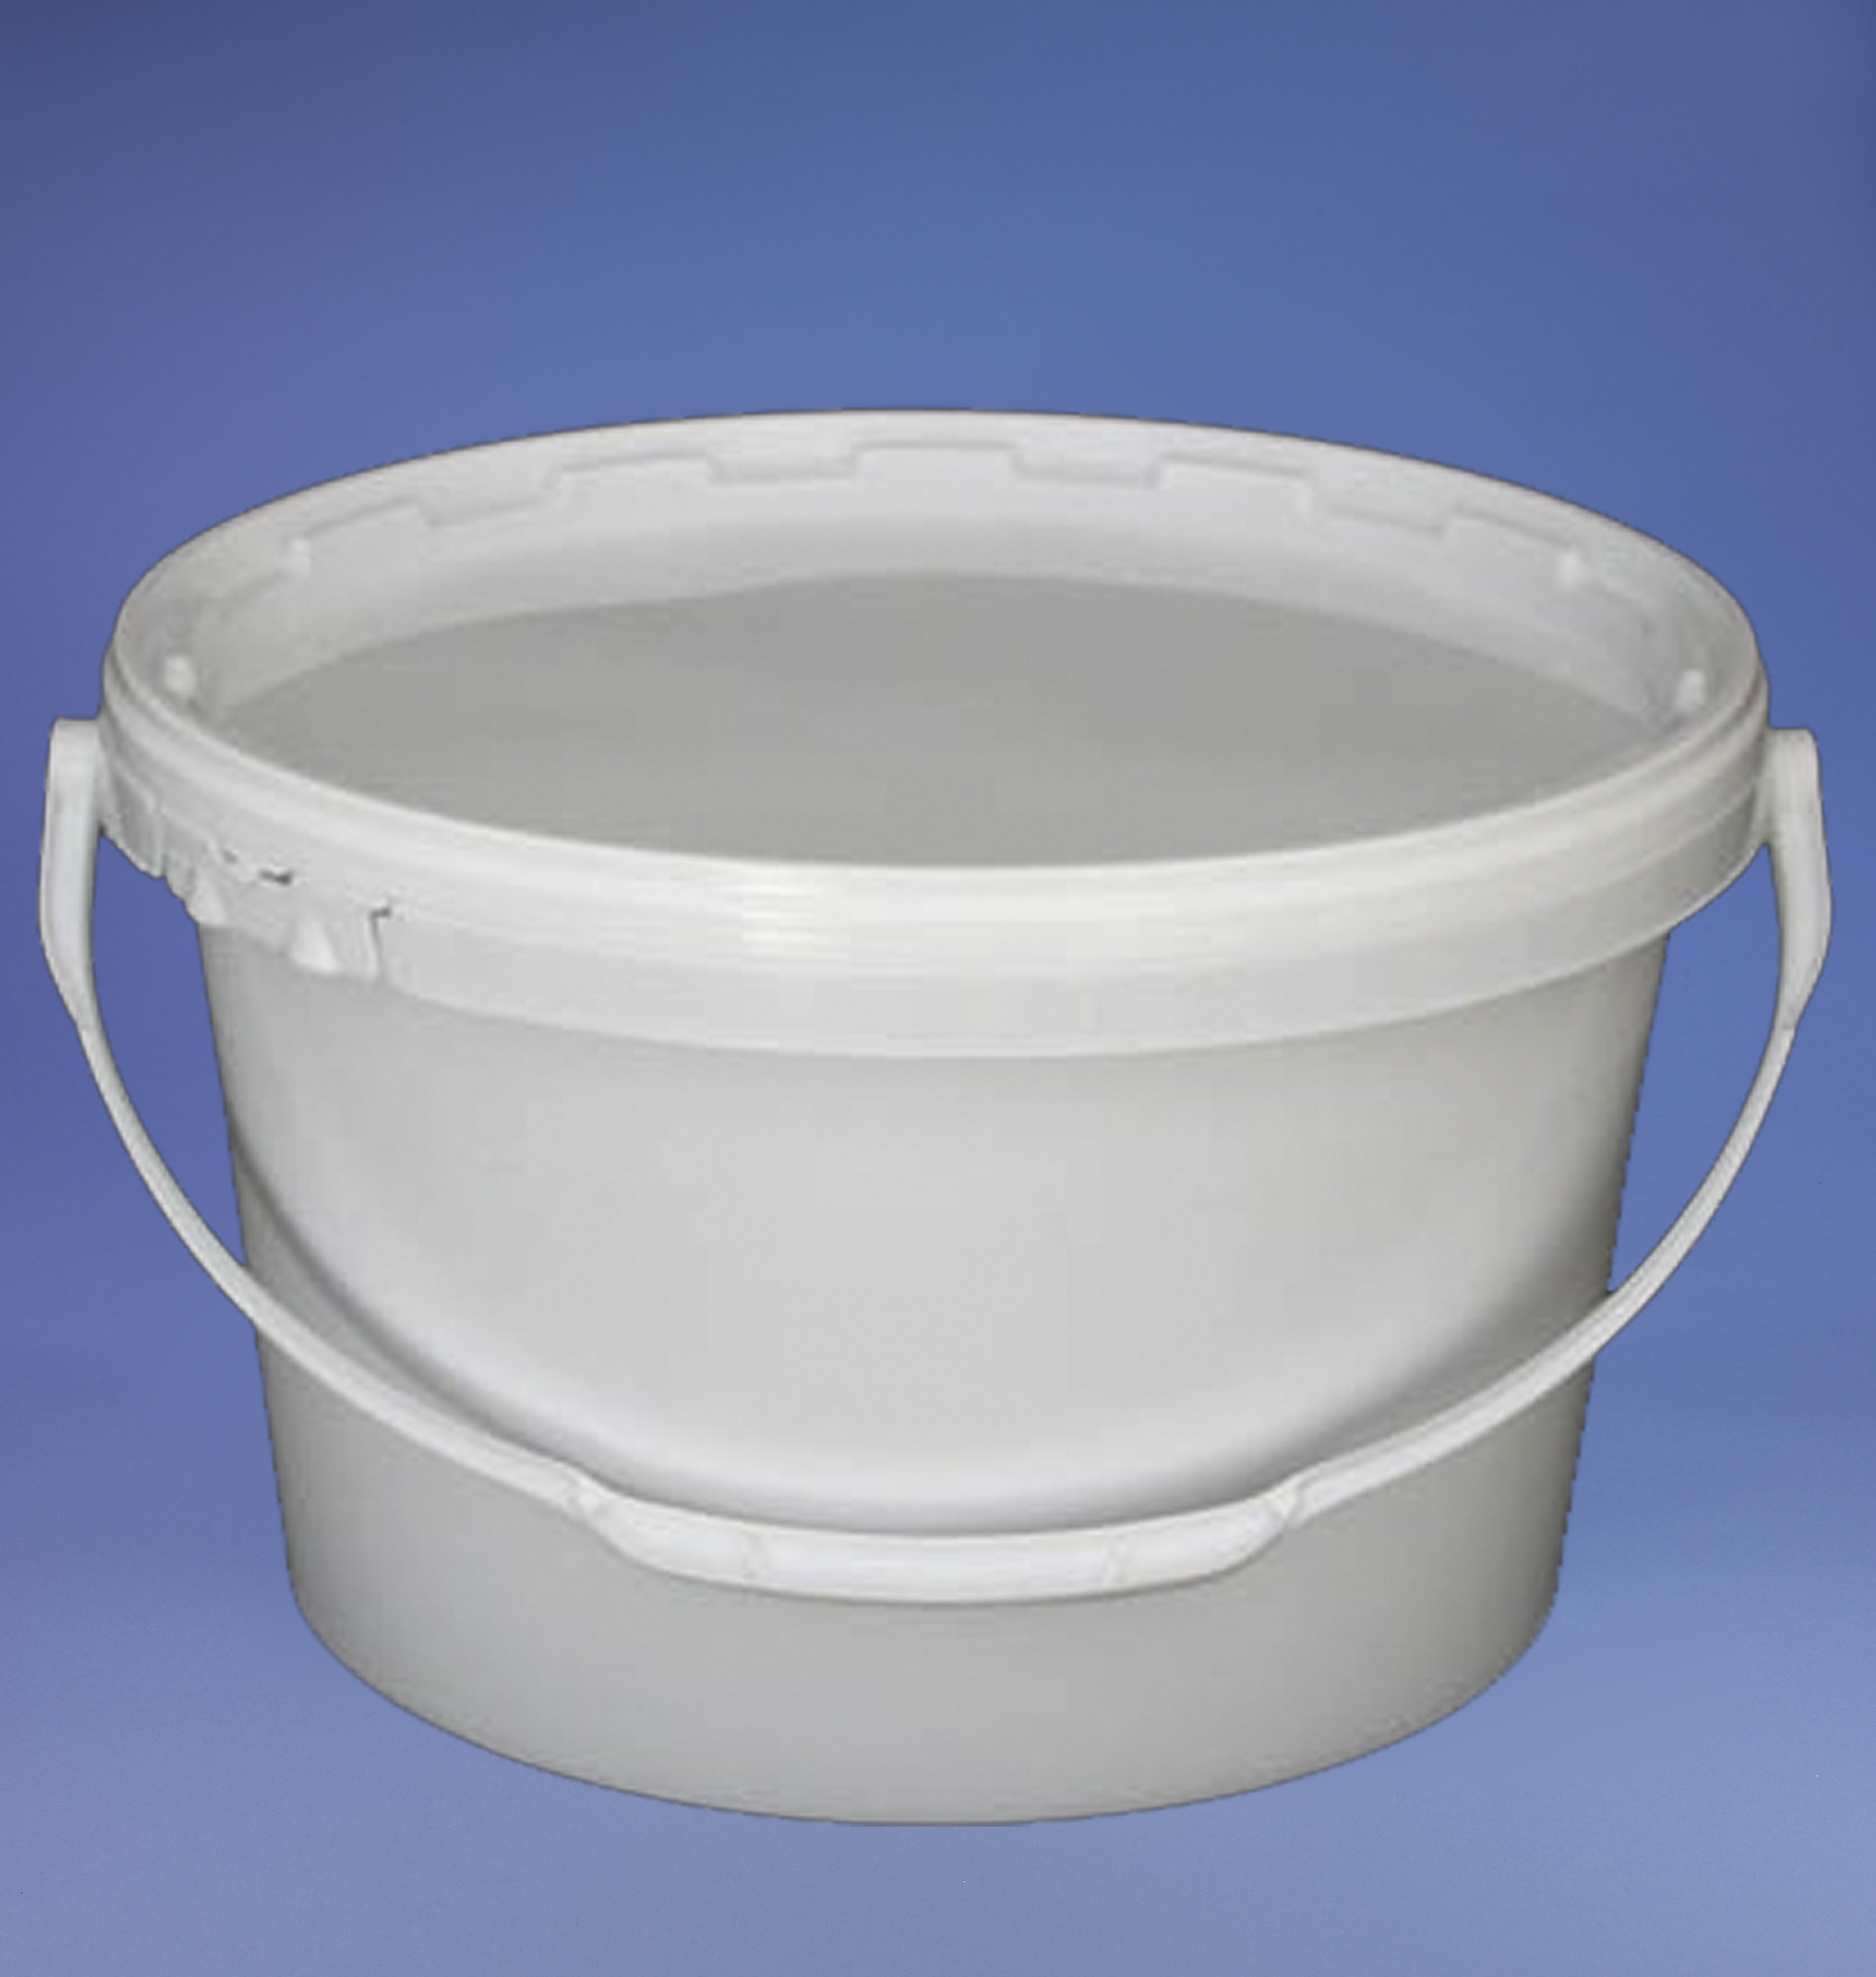 PB8OW Oval Bucket 8.3L